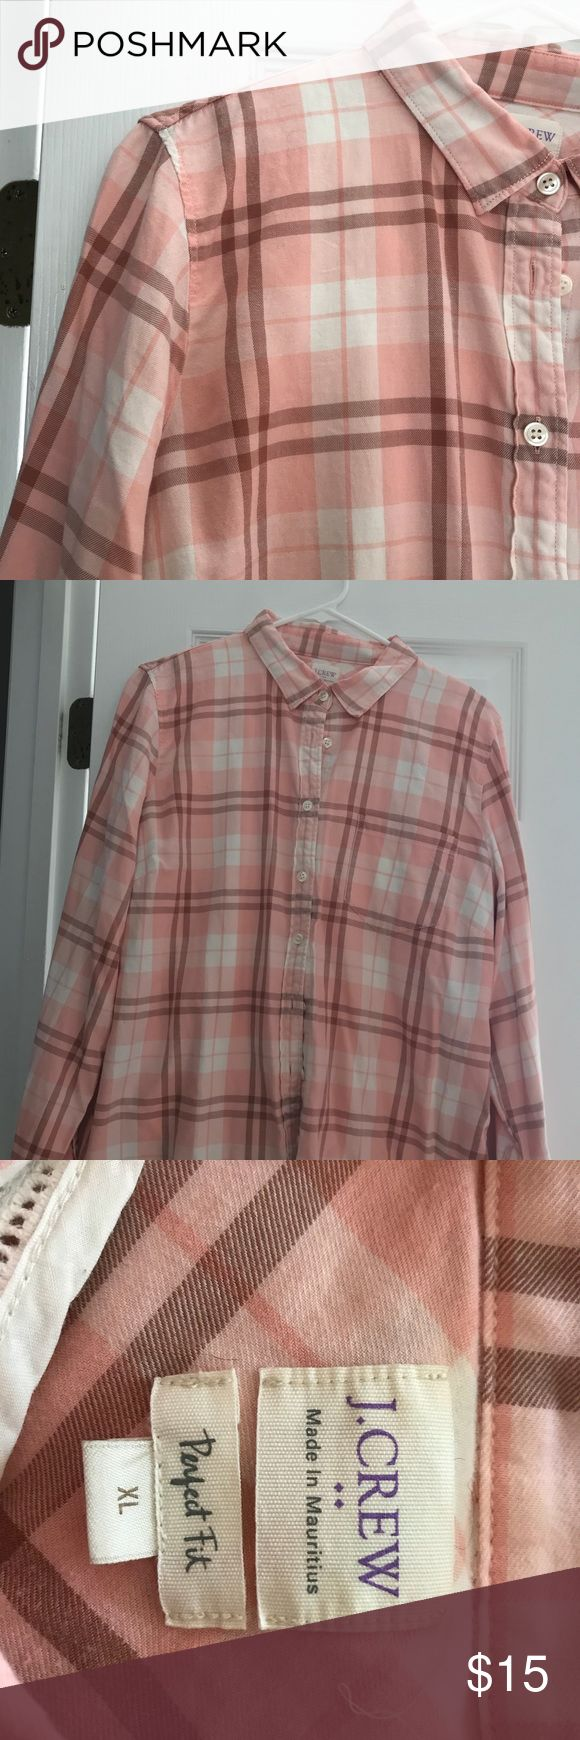 J Crew Flannel Shirt Soft, cozy J Crew Ladies flannel shirt. Gently used, plenty of life left. No stains, no holes, 🐶 friendly home. J. Crew Tops Button Down Shirts